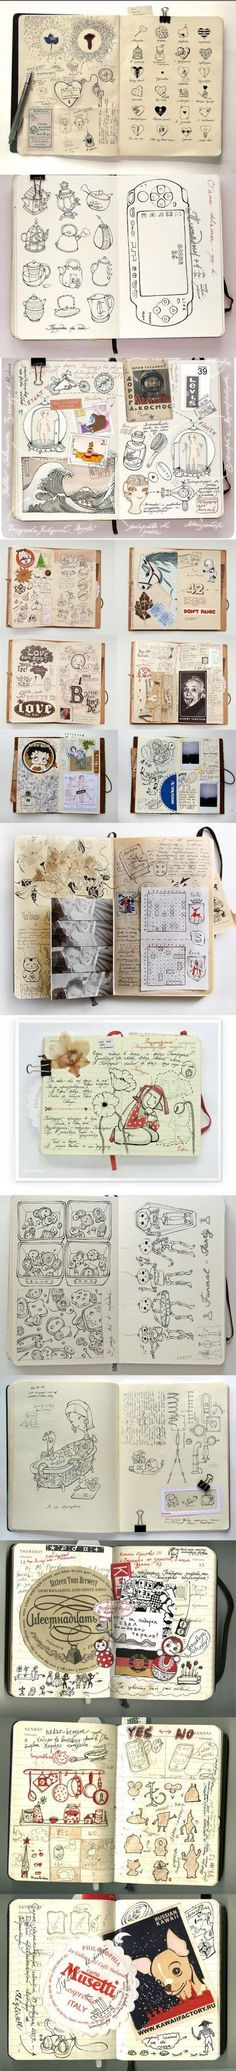 sketchbook / art journal / moleskine / creativity / drawing / scrapbook- I need… Doodles, Arte Sketchbook, Moleskine Sketchbook, Buch Design, Sketchbook Inspiration, Sketchbook Ideas, Doodle Inspiration, Visual Diary, Journal Pages